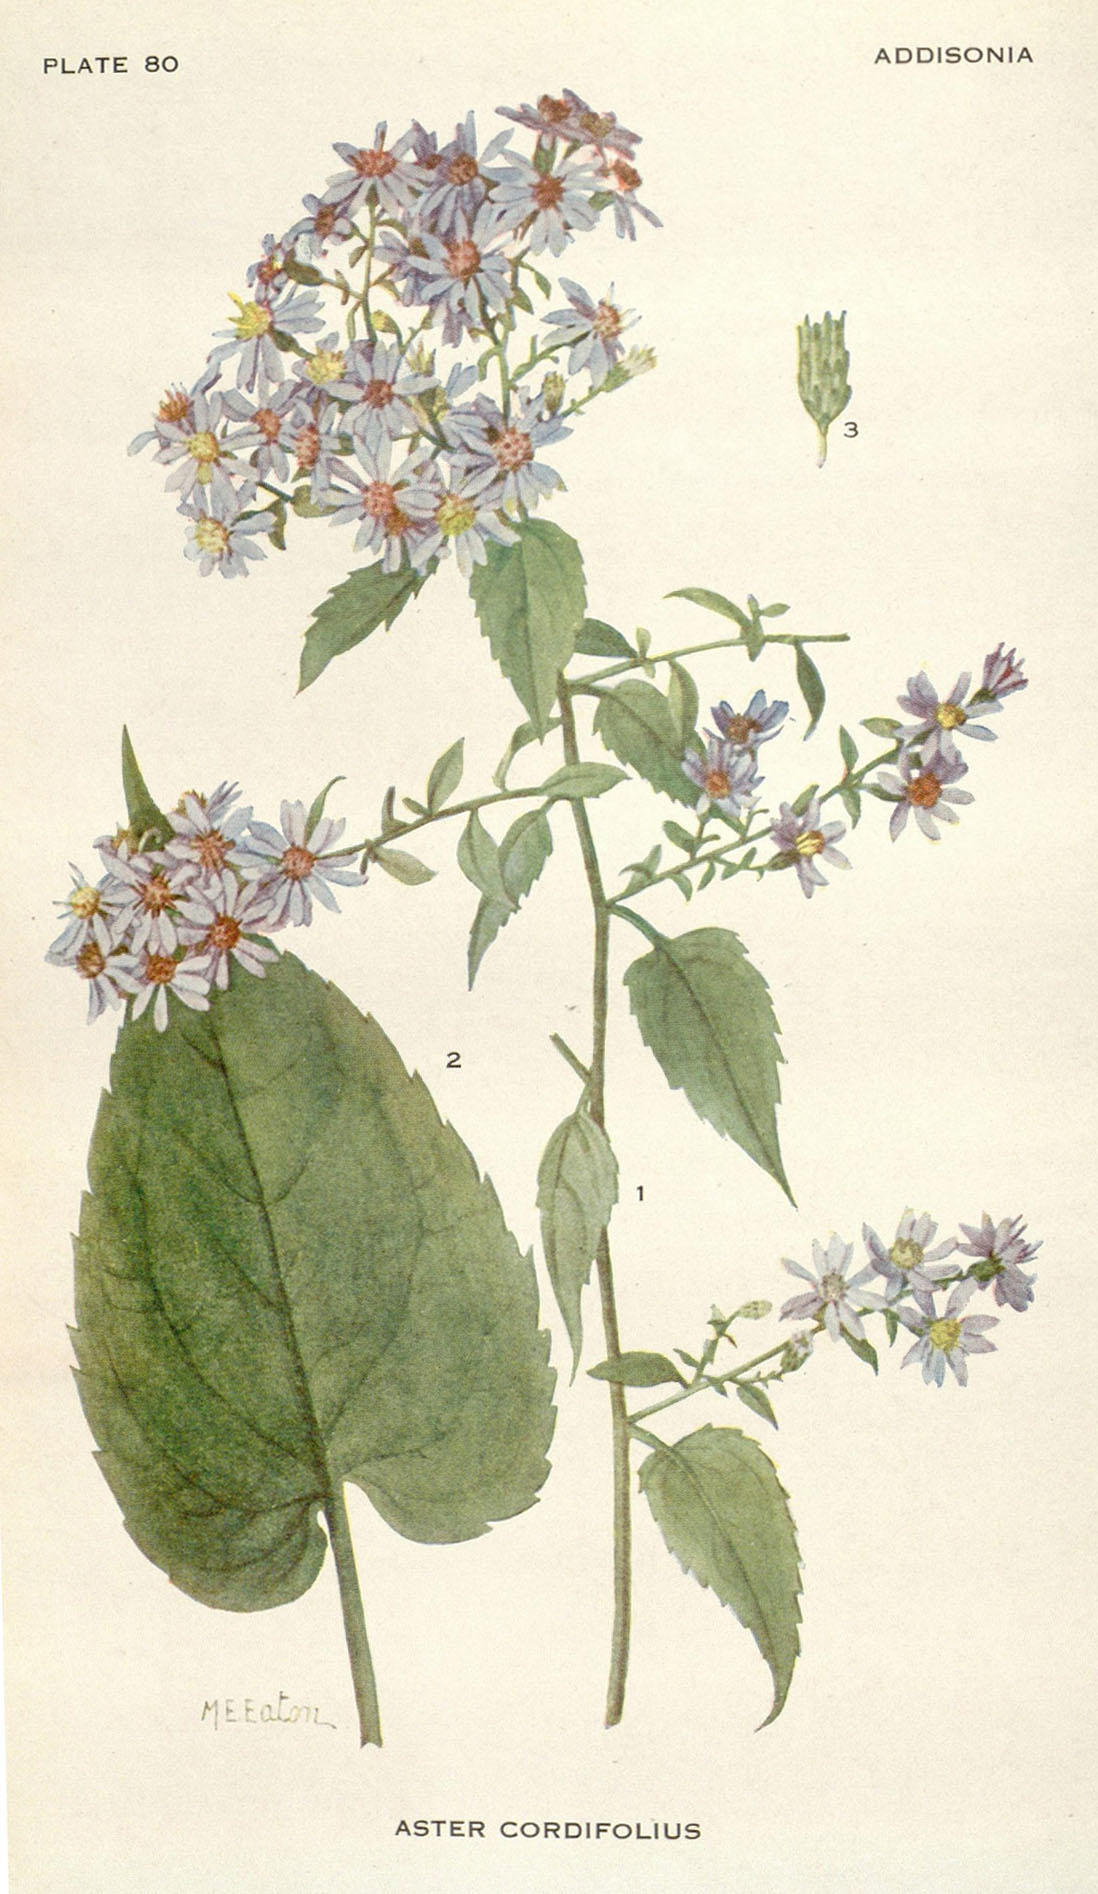 Illustration of an aster plant, with daisy-shaped blue flowers.